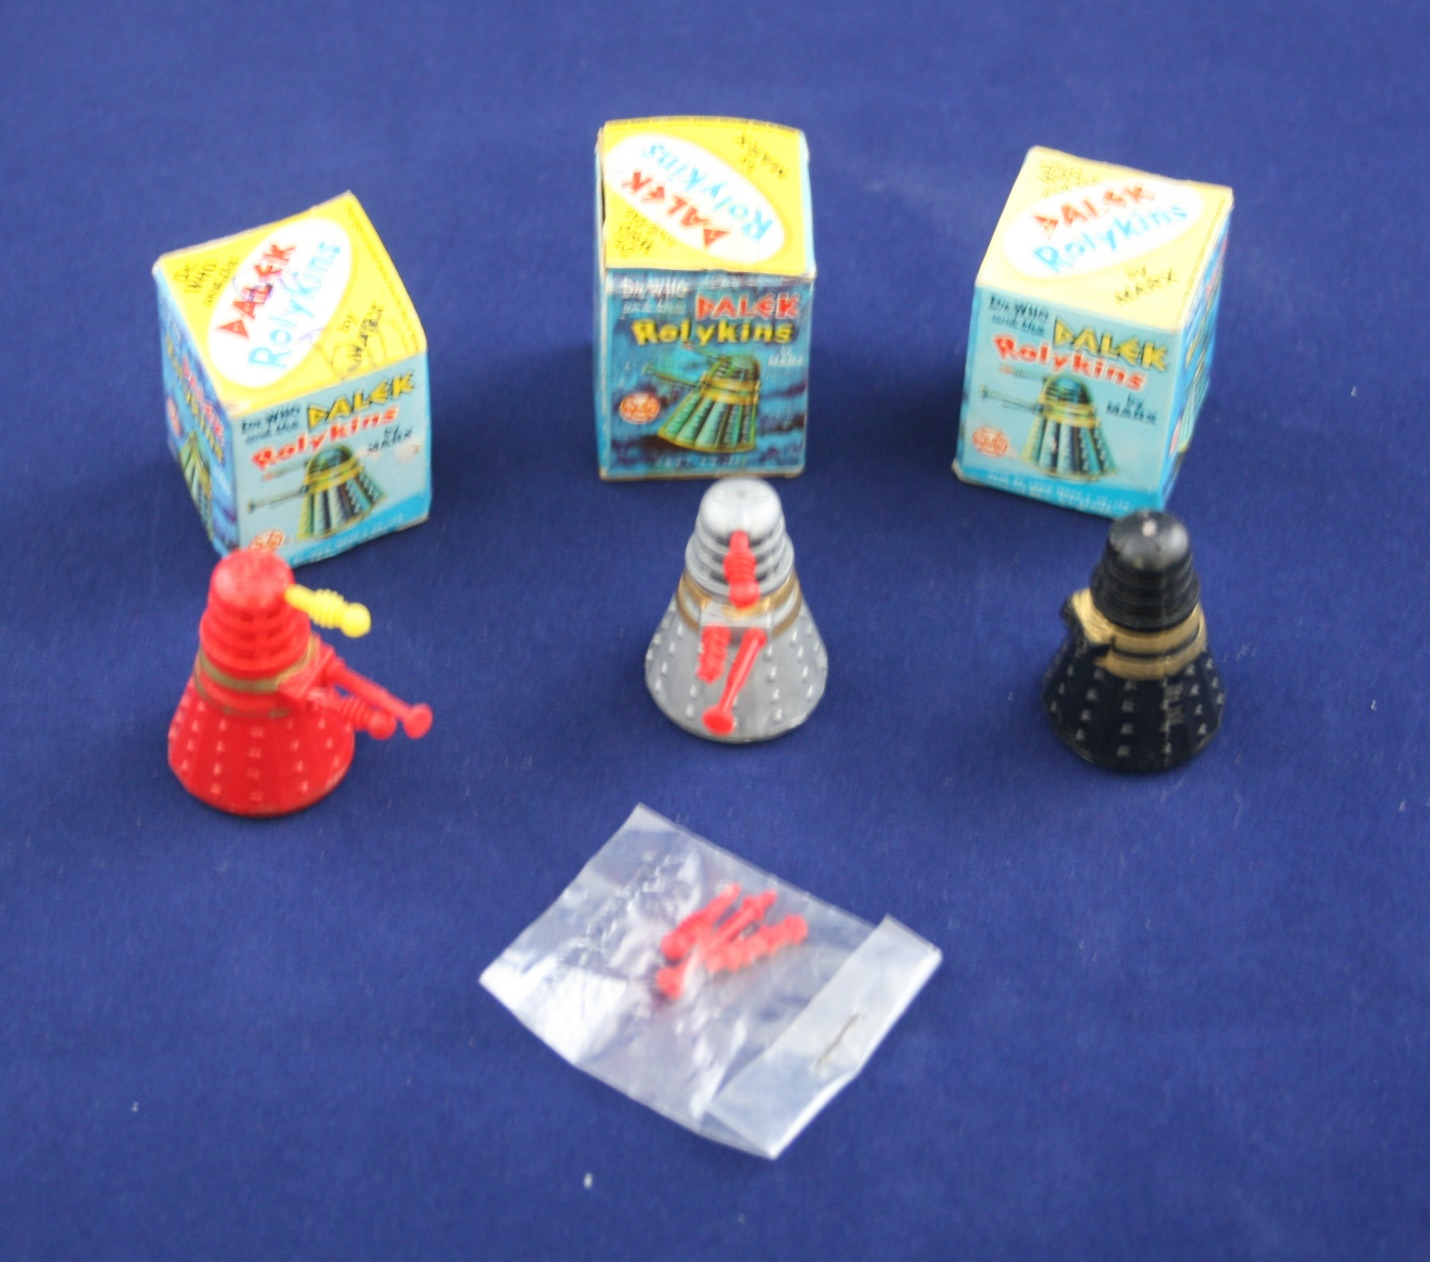 Louis Marx and Company Ltd., all three versions of the Dalek Rolykins